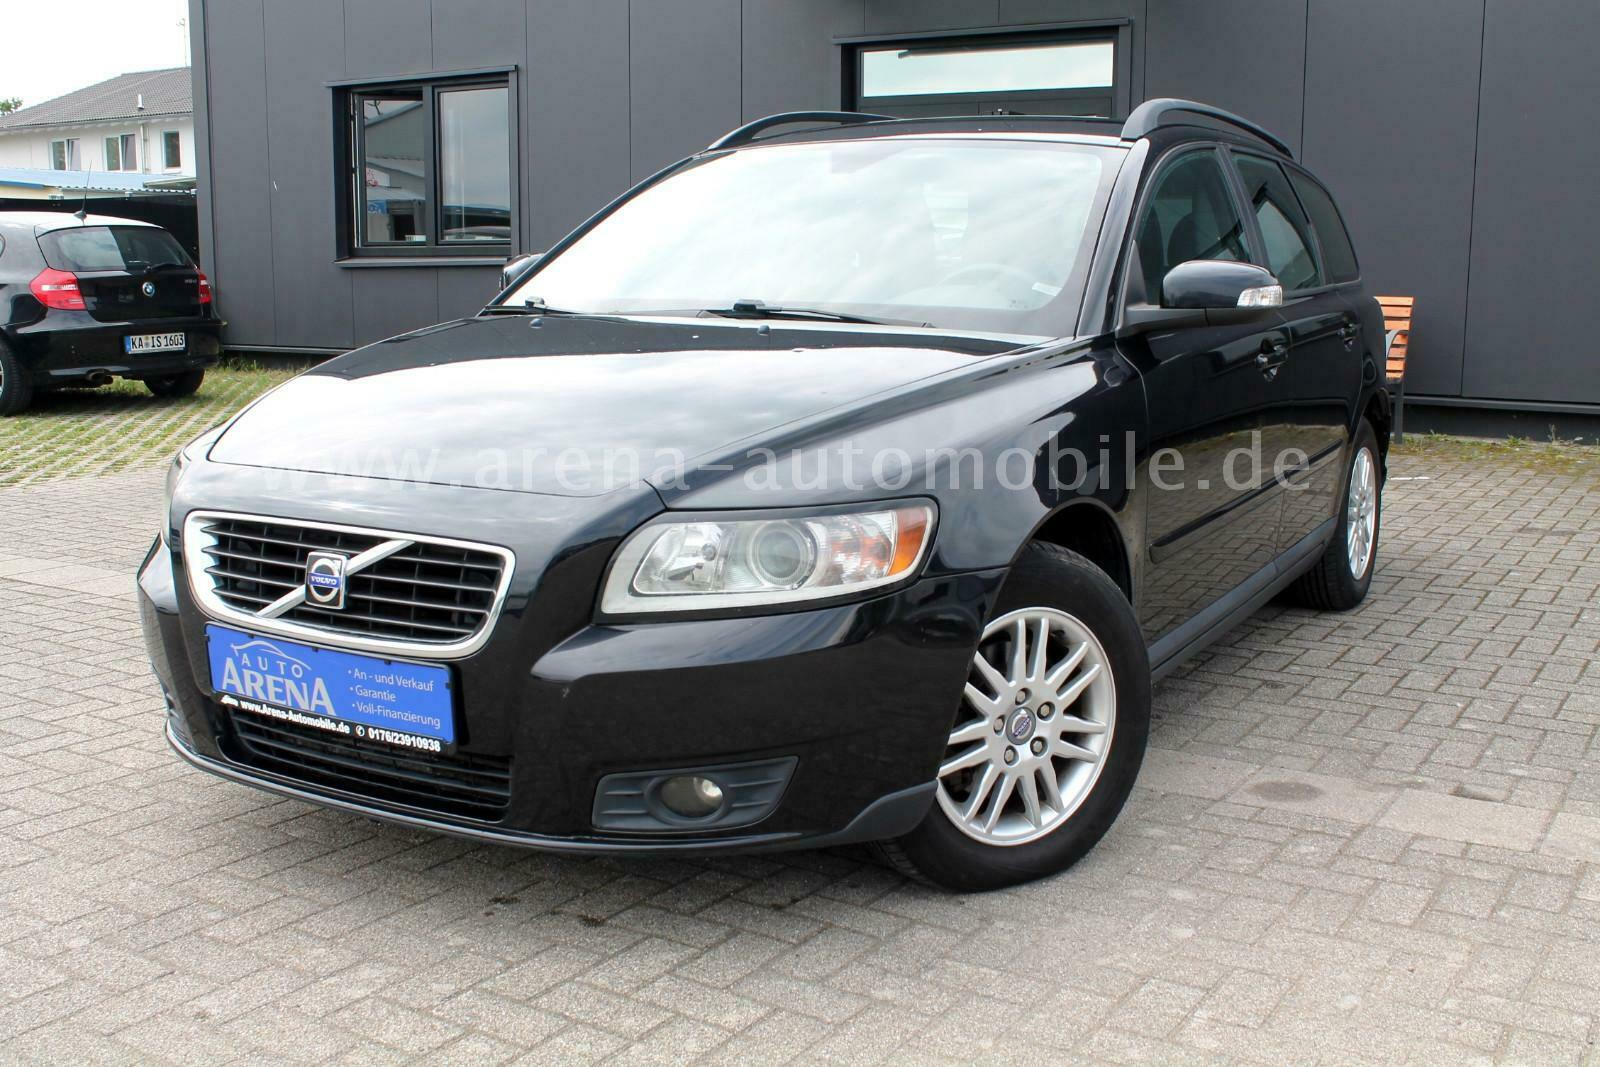 VOLVO V50 1.6D DPF PDC, 2.HAND,